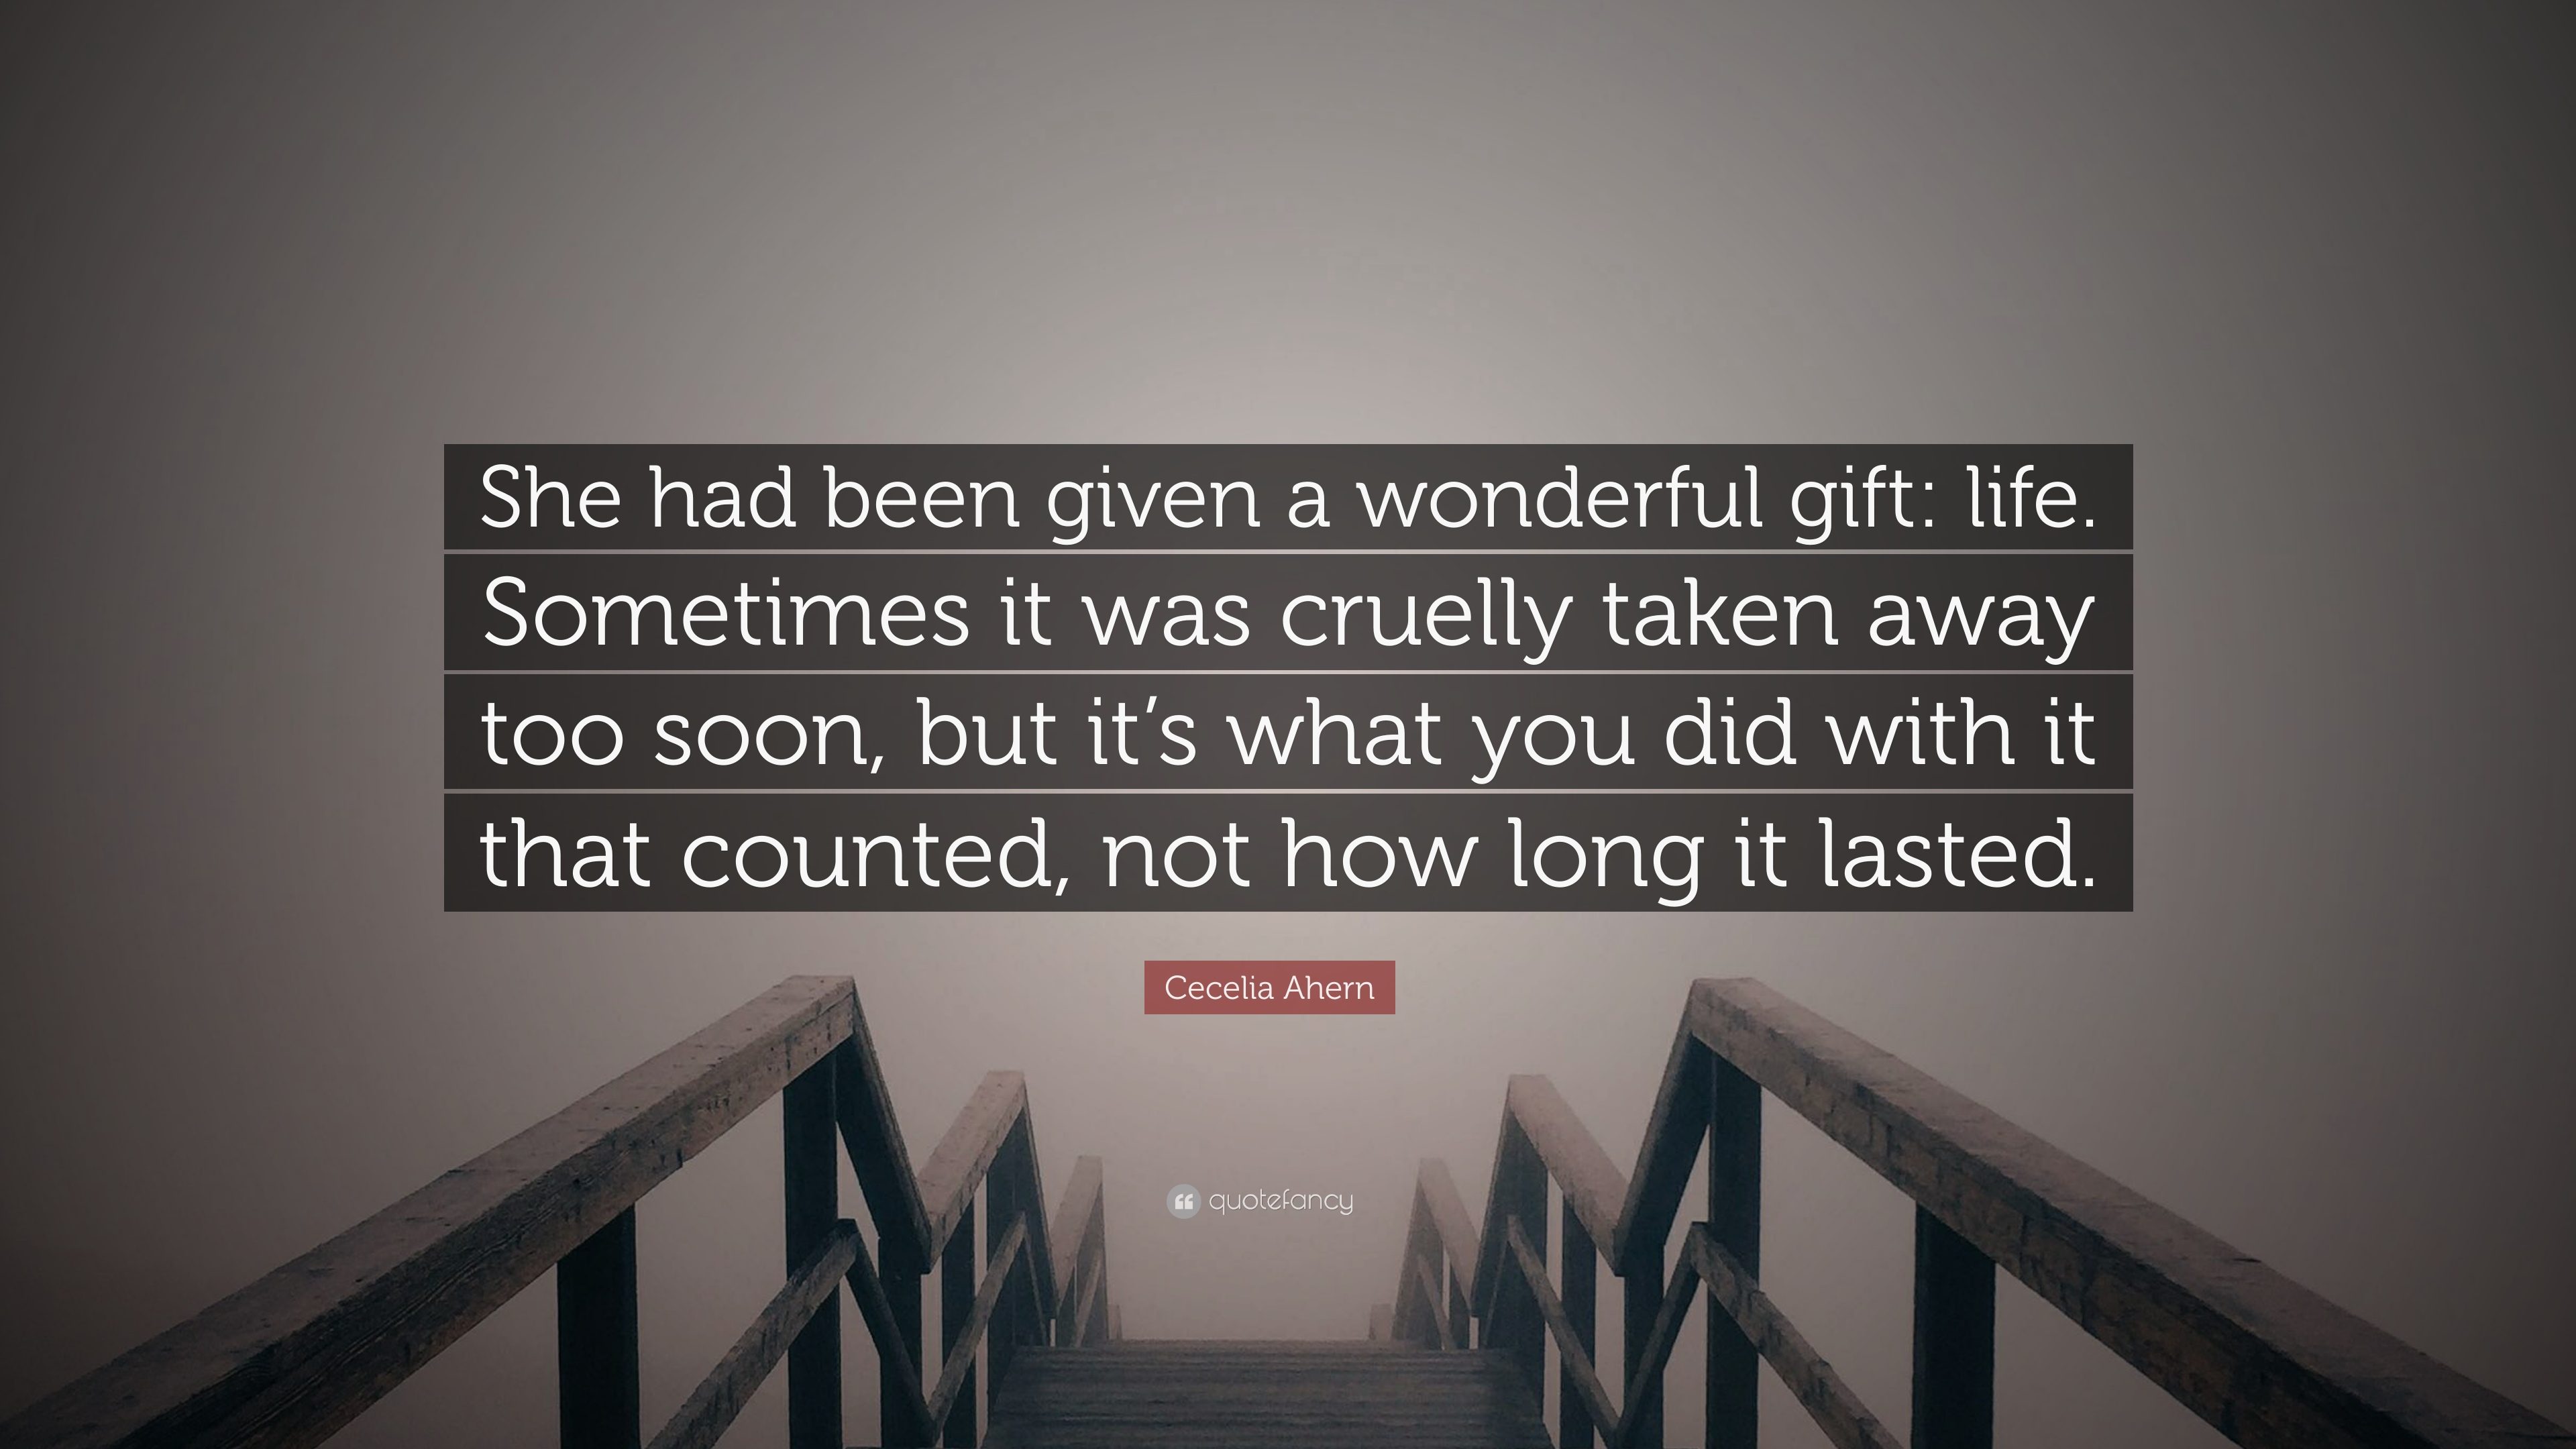 Quotes About Losing A Loved One Too Soon Quotestaken Too Soon Quotes God Took You Too Soon Quotes • Hak660